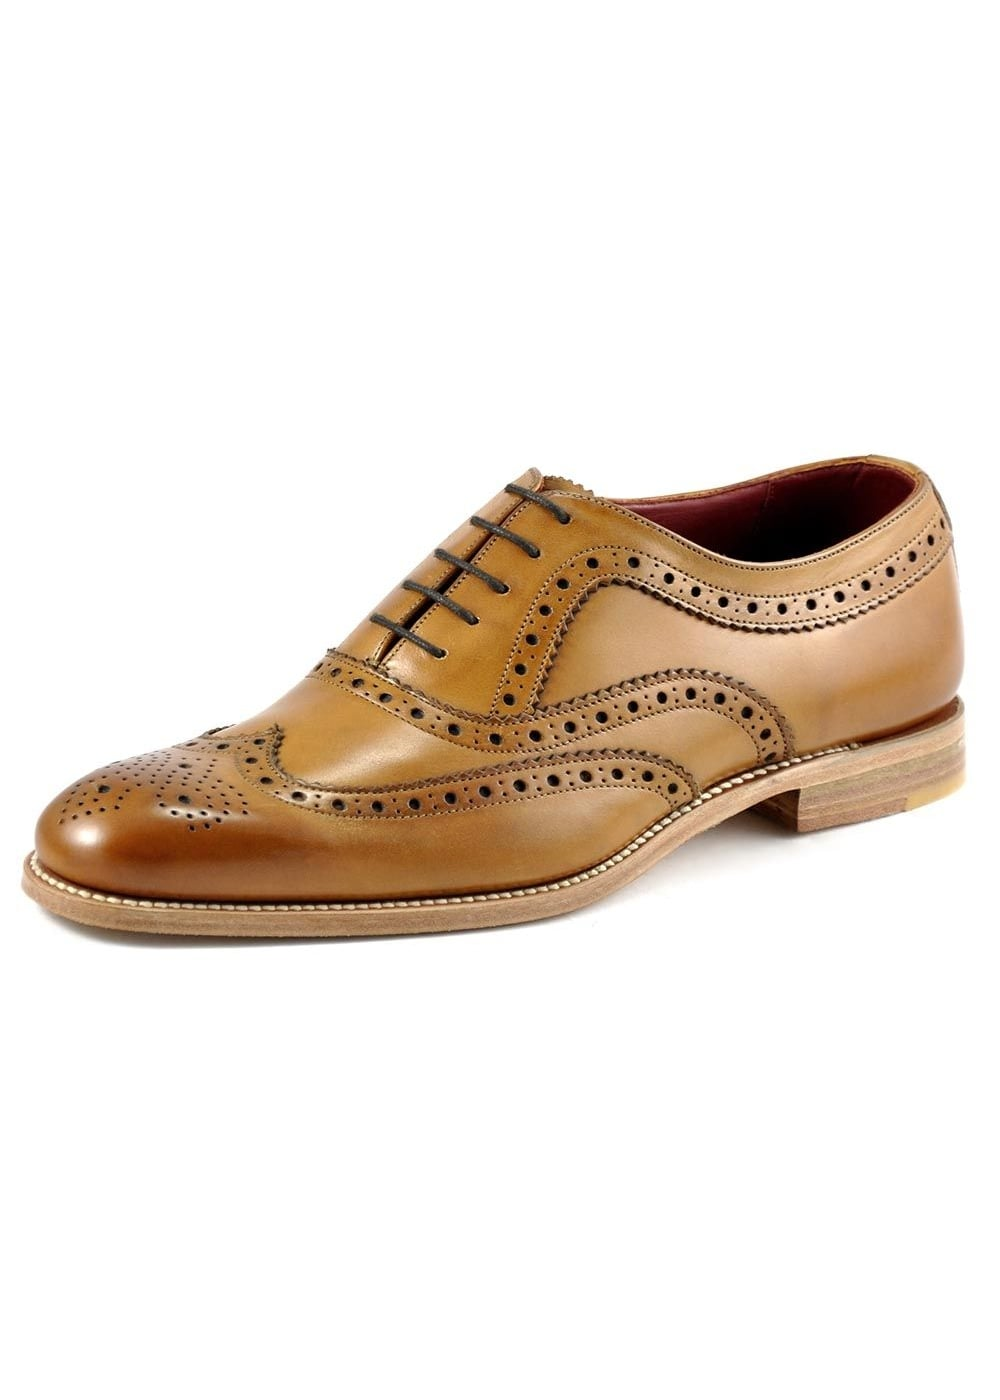 Loake Fearnley Shoes  Large Image